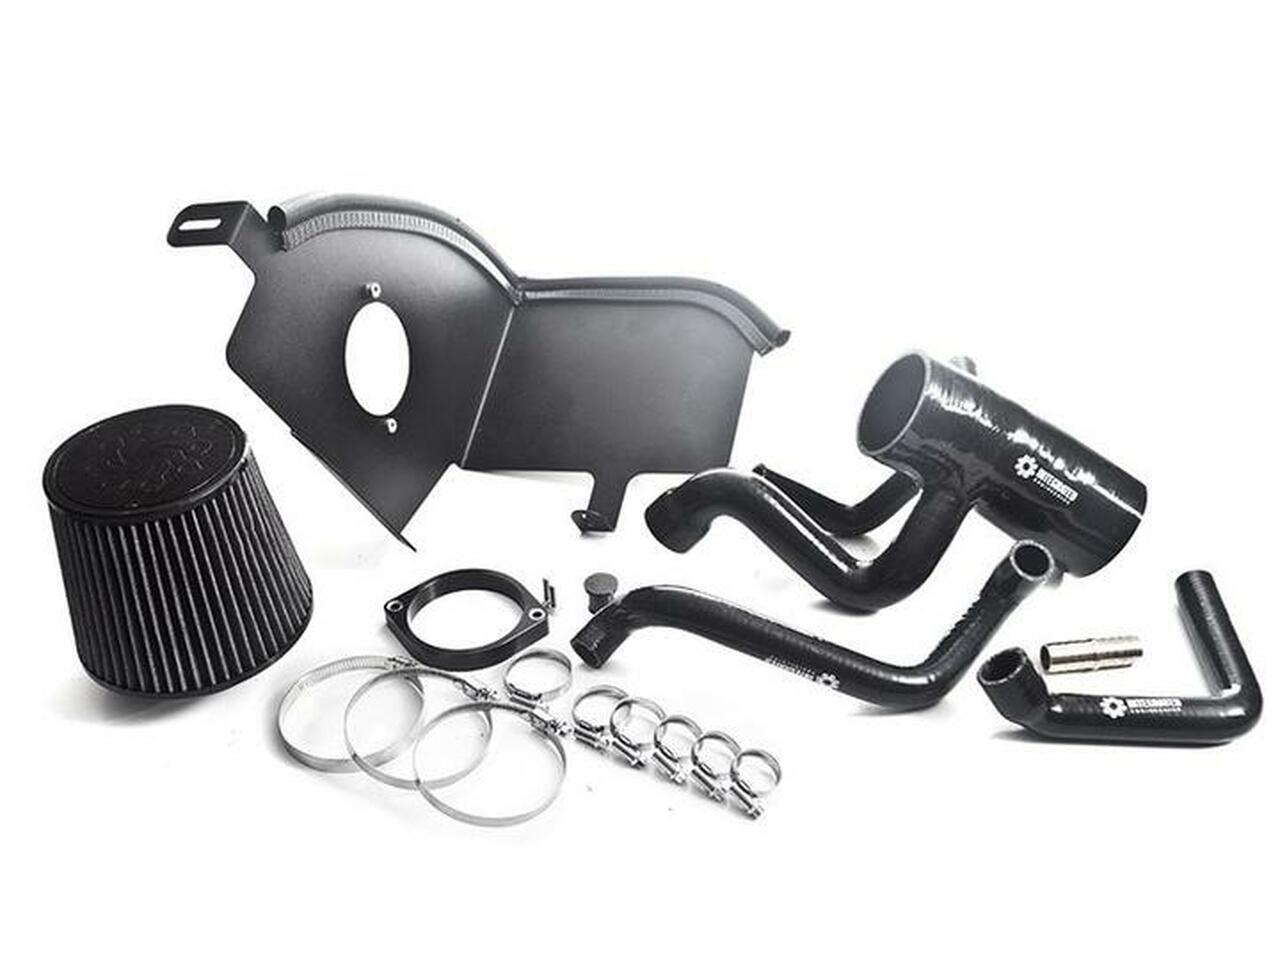 IE MK5 Rabbit & Jetta 2.5L Intake Manifold Cold Air Intake Kit